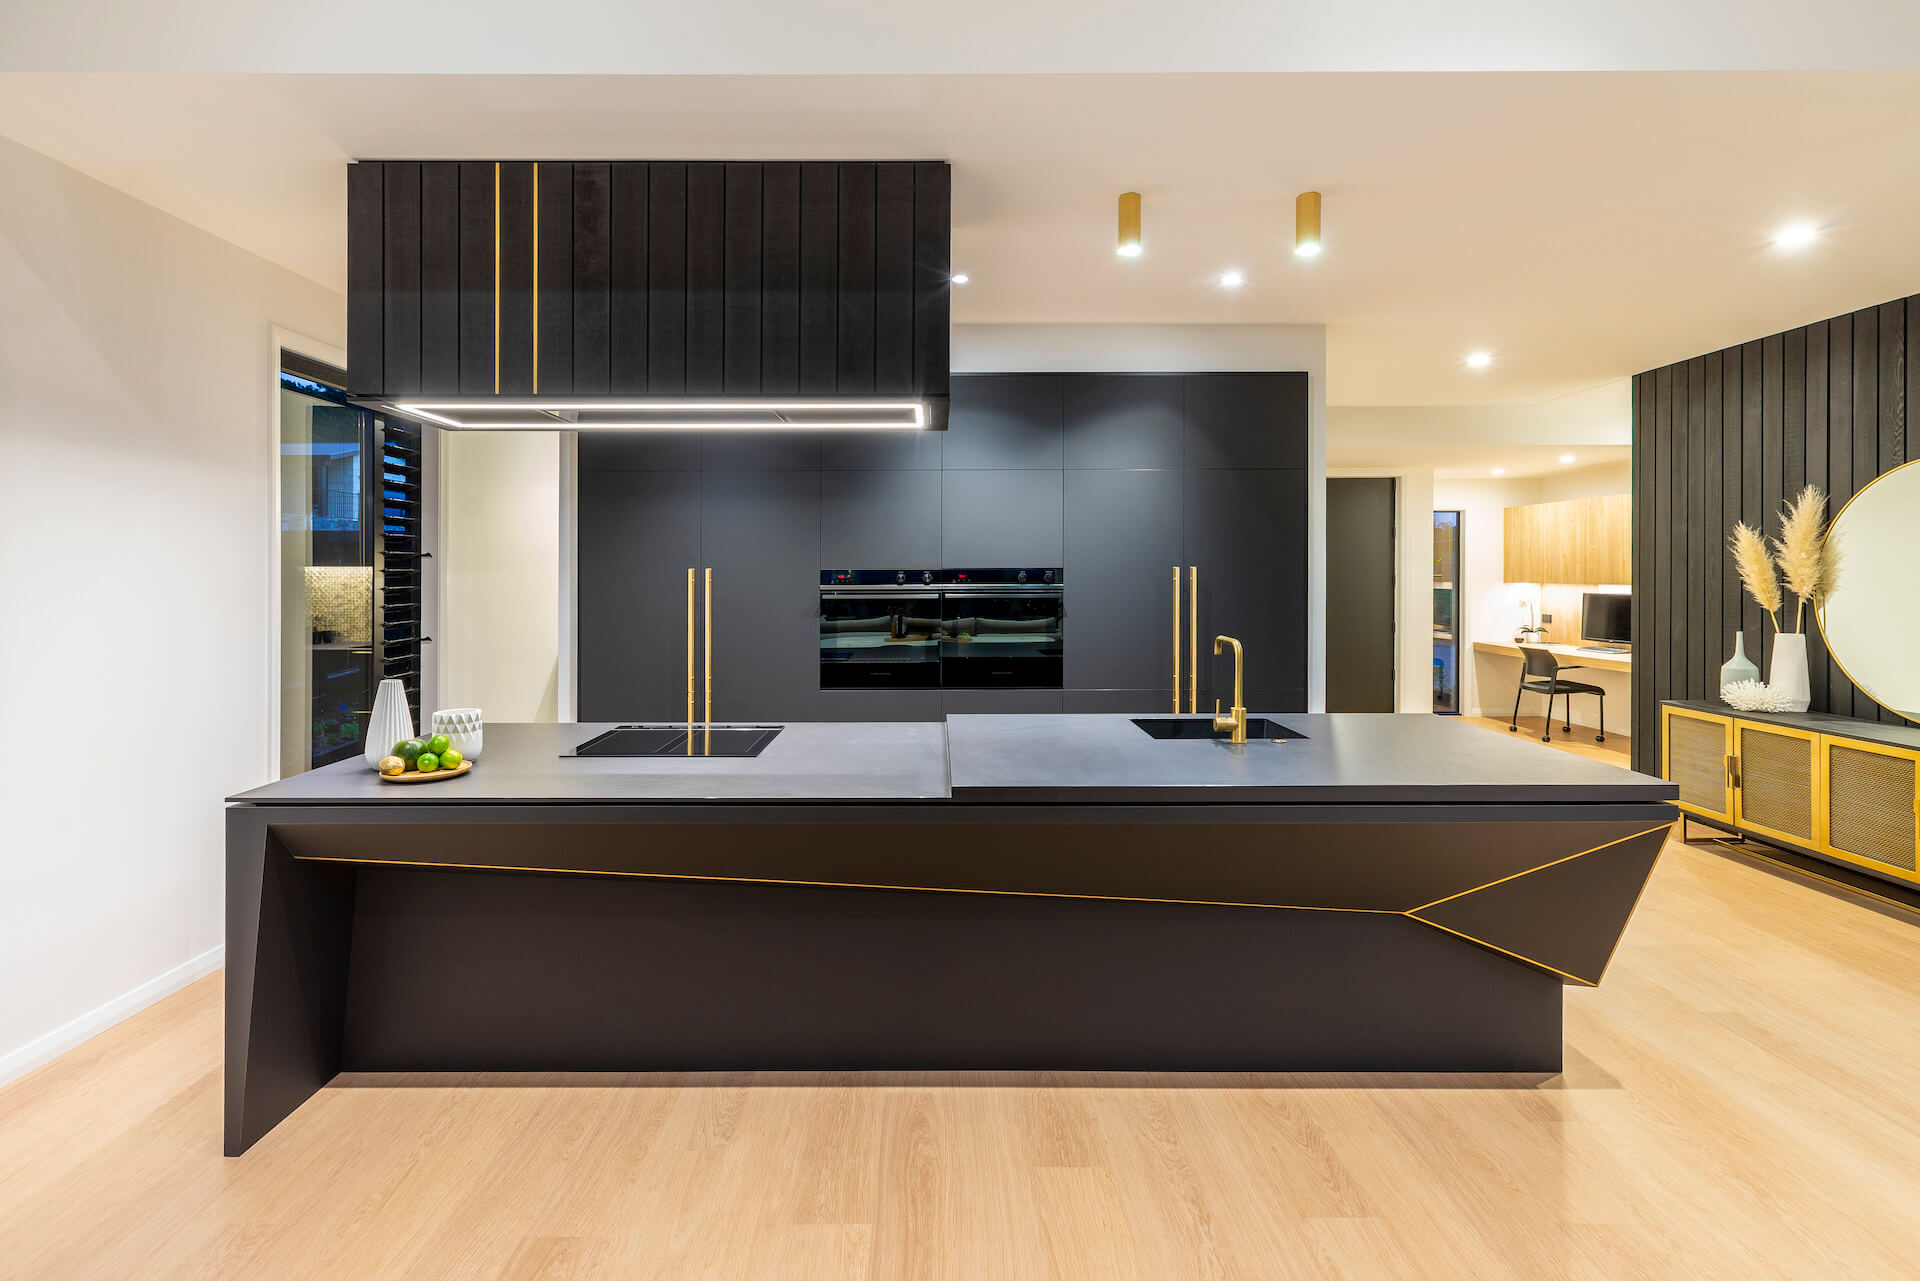 Visit our showroom! Get in touch and we can arrange a personal tour with one of our designers.